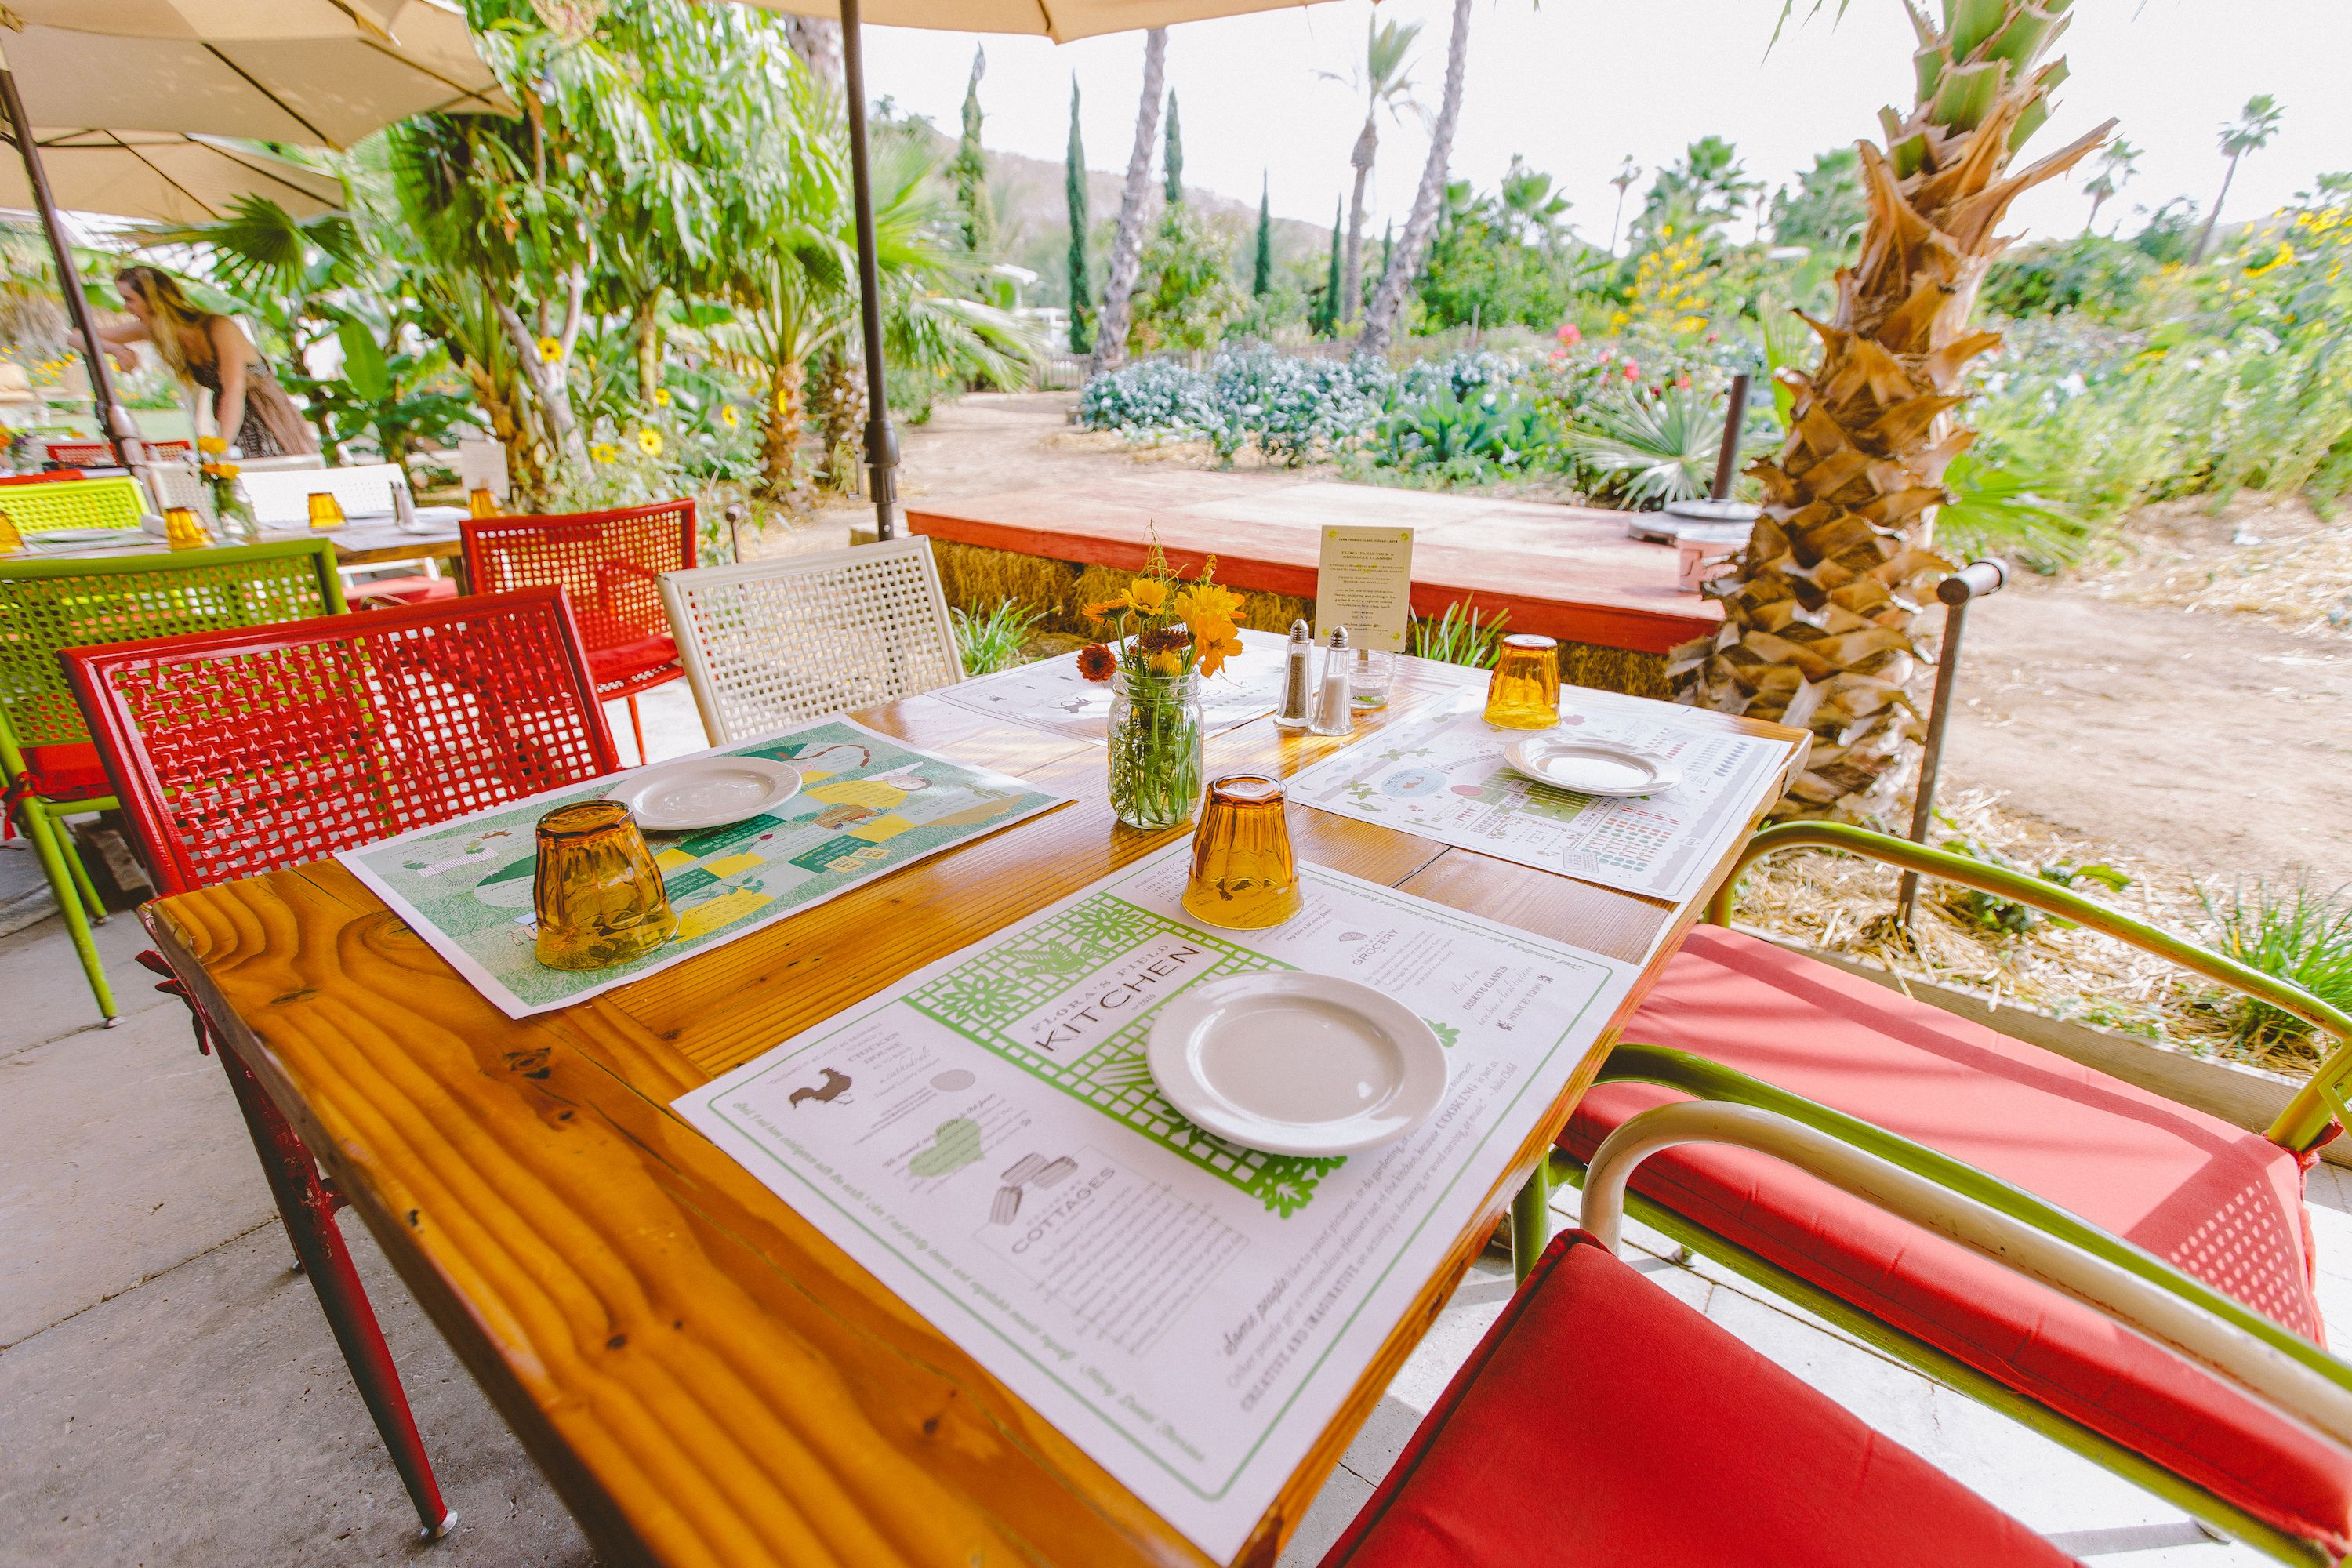 A set table with a garden in the background at Flora Farms in Cabo San Lucas